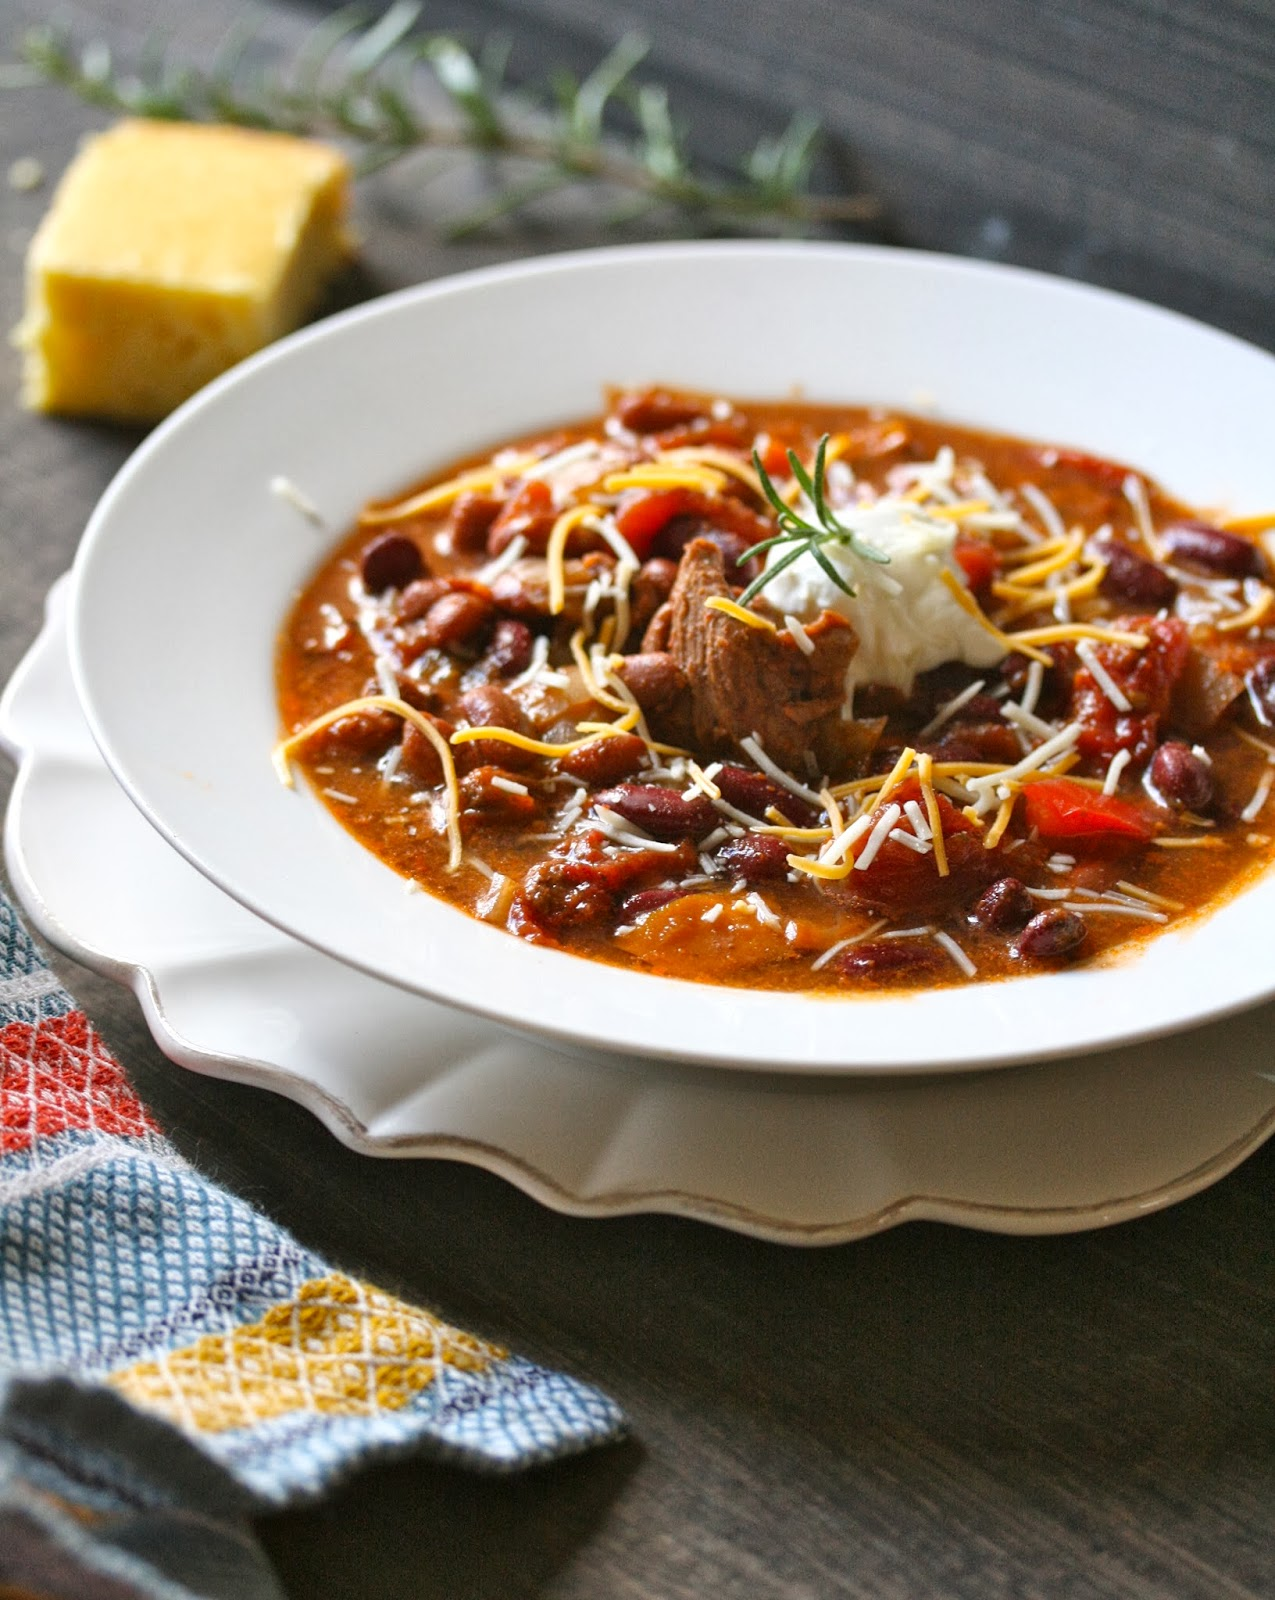 Angie Cooks In Portland: Game Day Chili